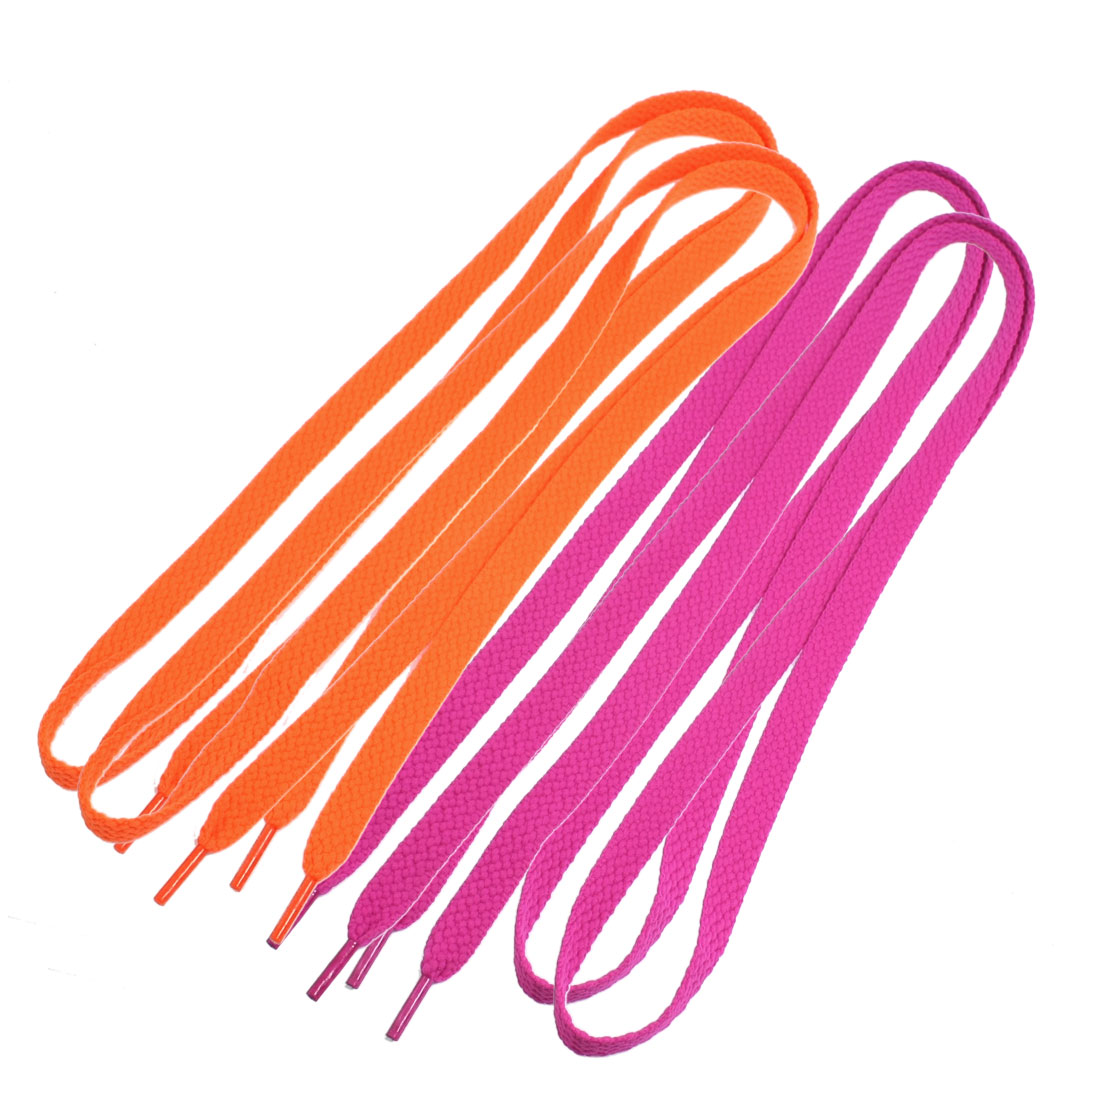 2 Pairs Flat Canvas Sneakers Sports Shoes Lace Shoelaces Orange Fuchsia